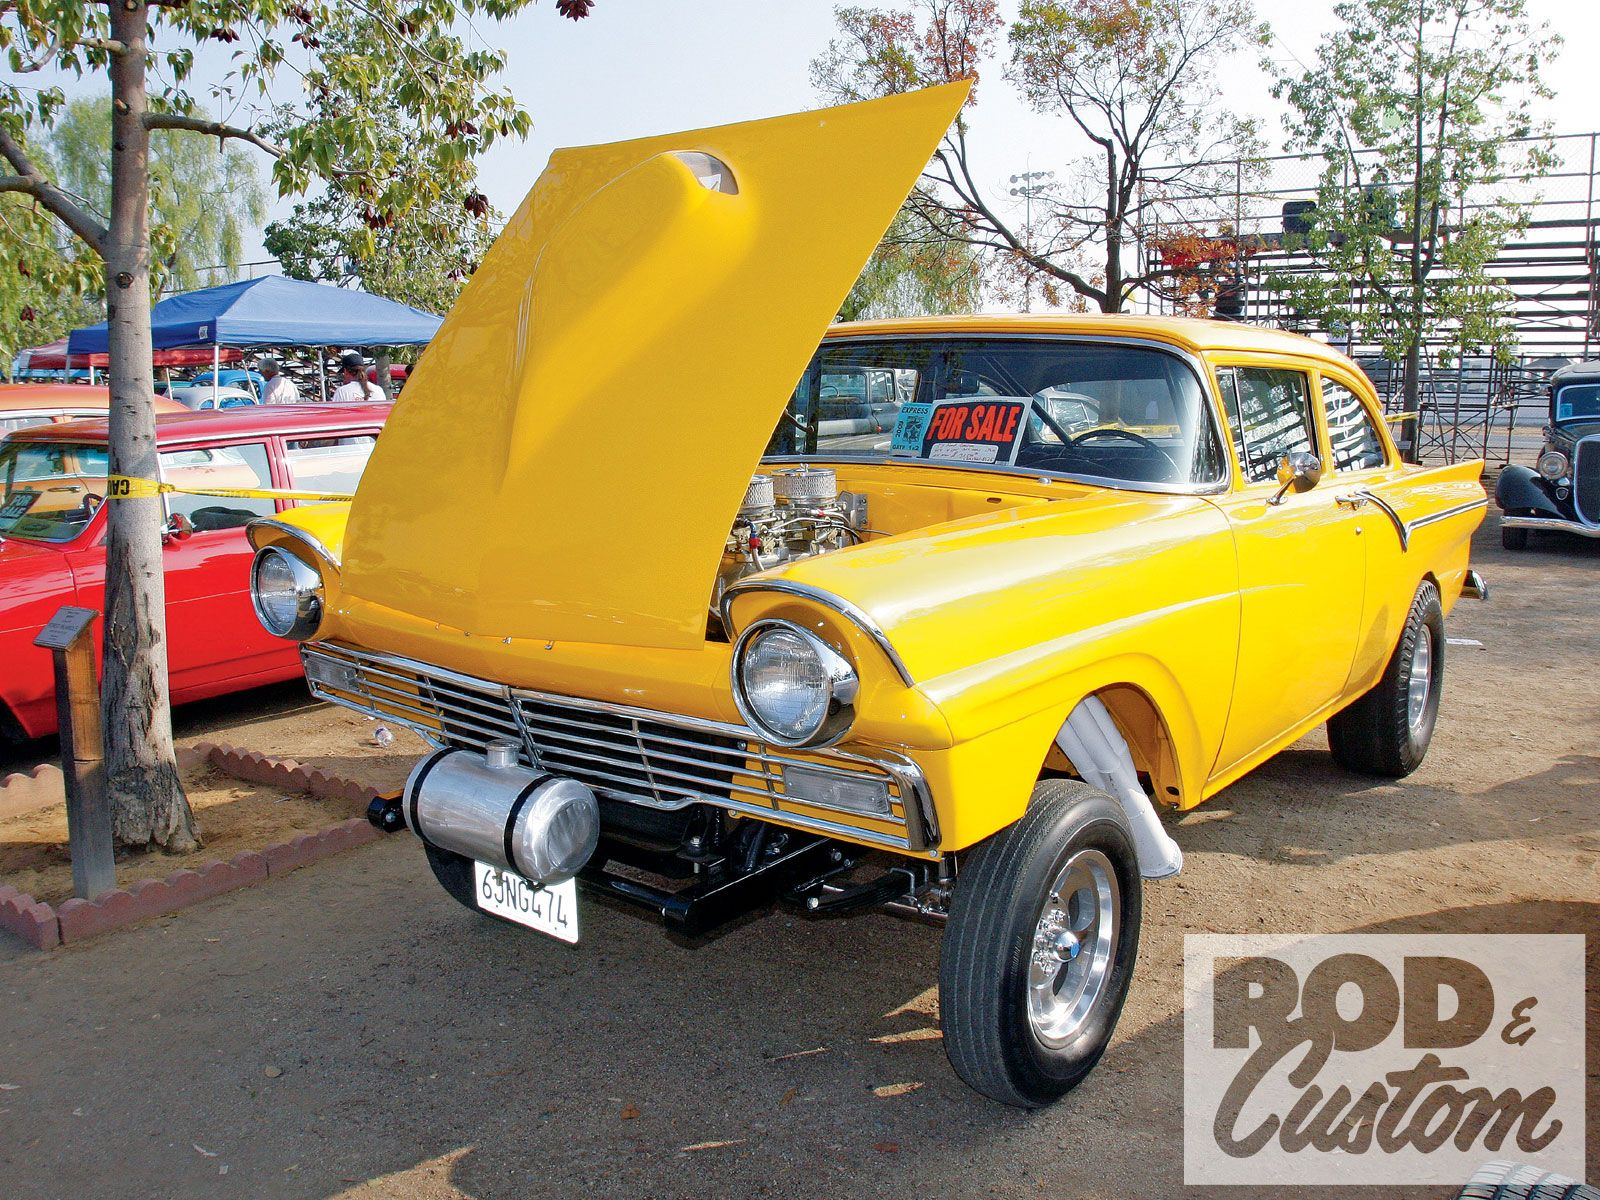 1956 chevy tattoo submited images pic2fly - Hot Rods Hot Rod Reunion Vintage Race Cars 1957 Ford Gasser Photo 2